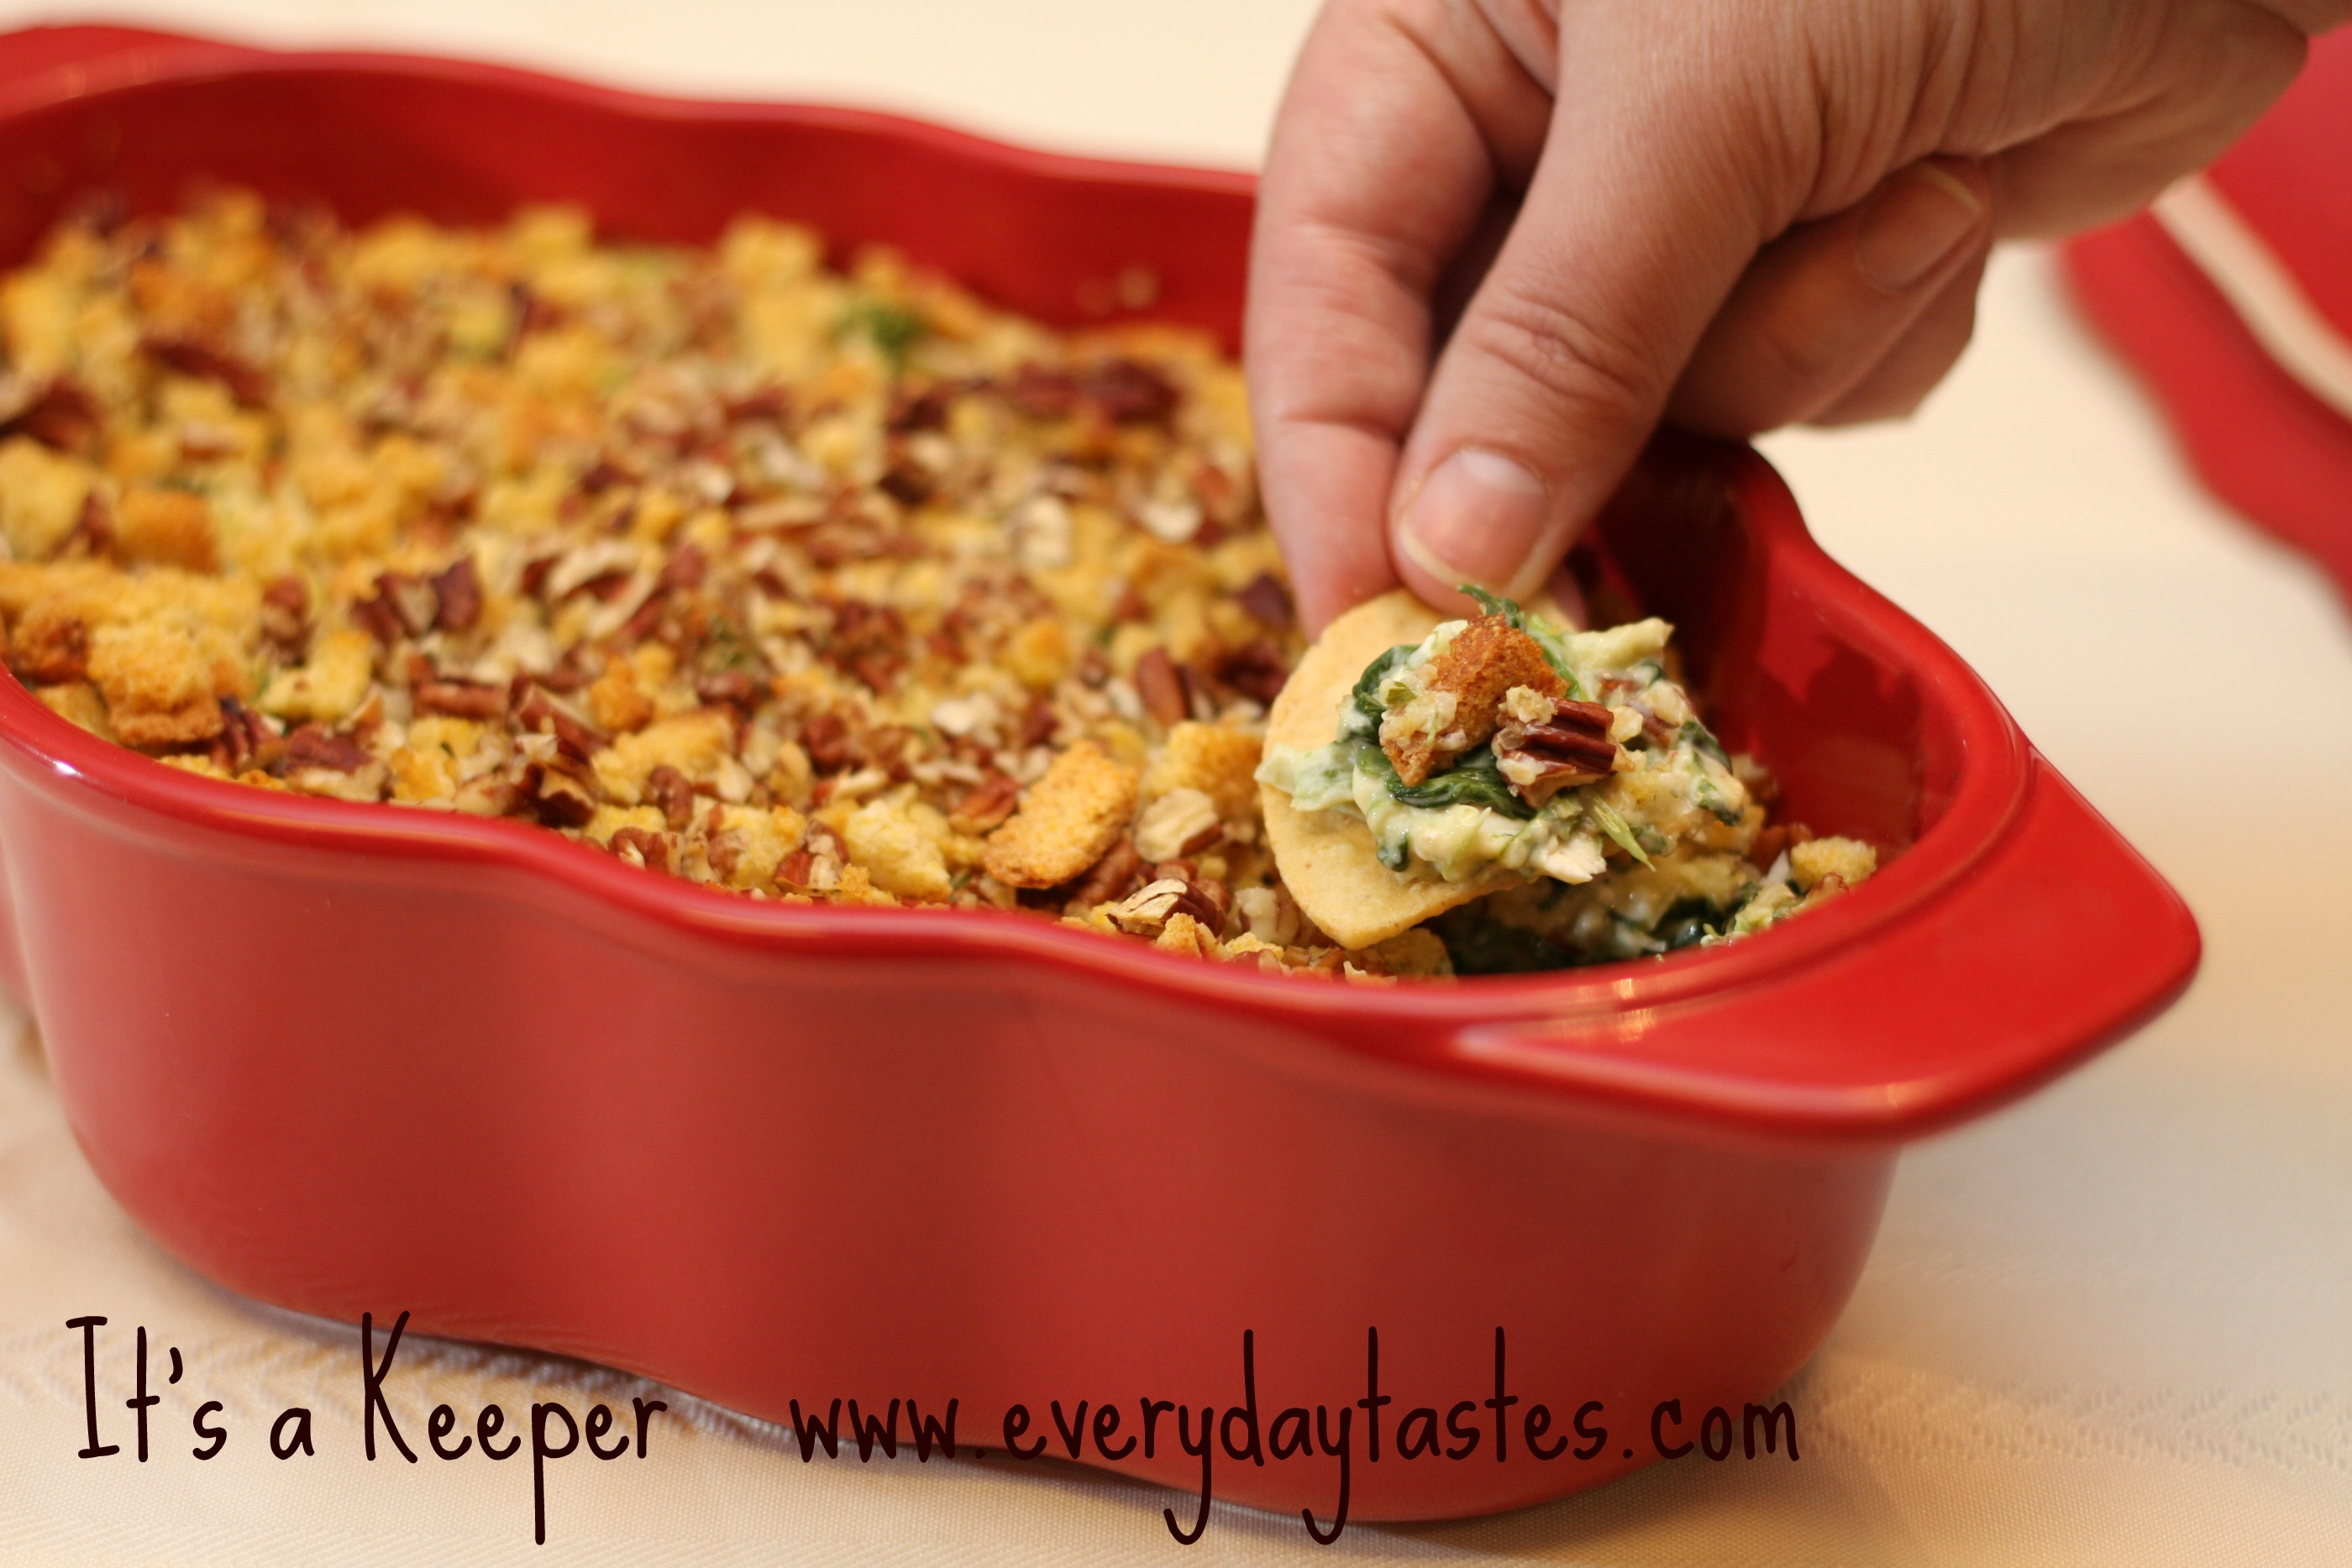 Football Food: The Best Baked Spinach Artichoke Dip - It Is a Keeper